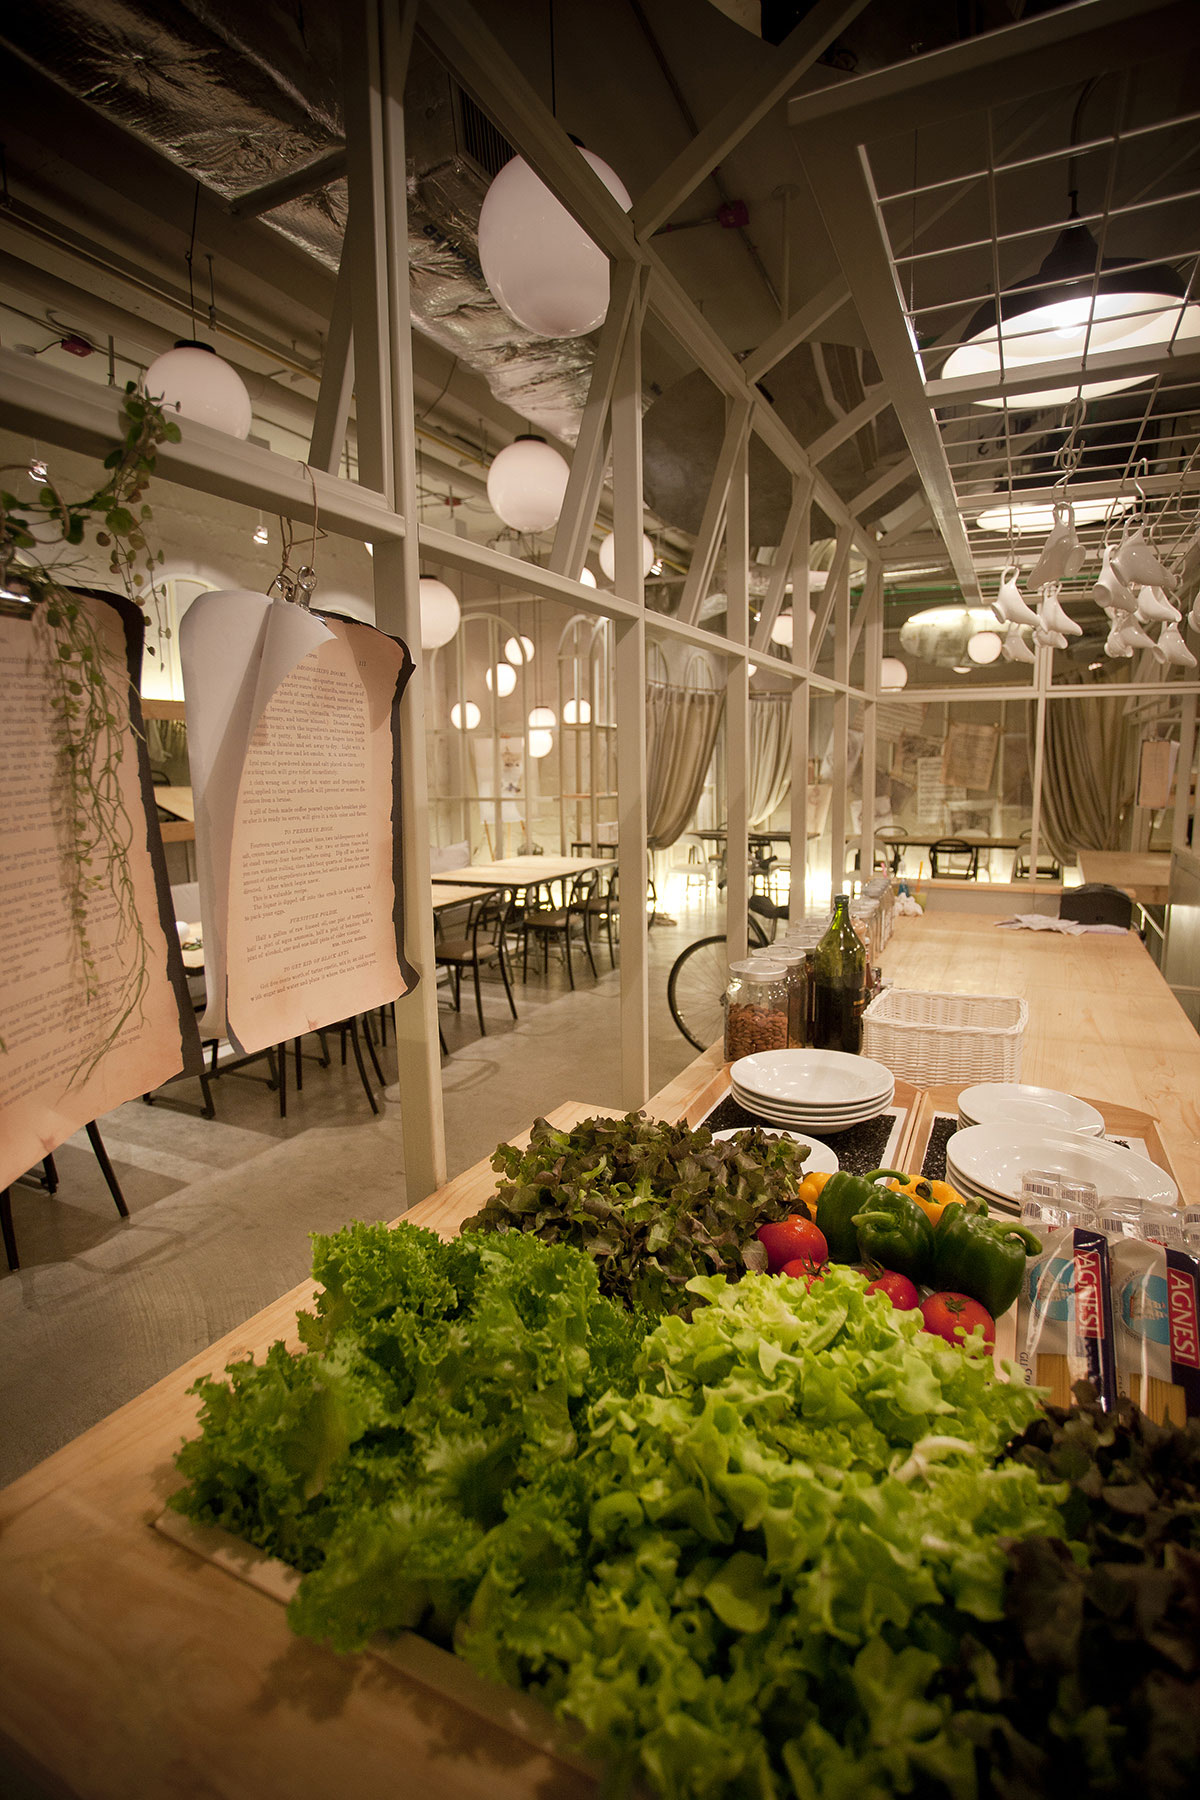 House of Salad by Metaphor  |  Yellowtrace